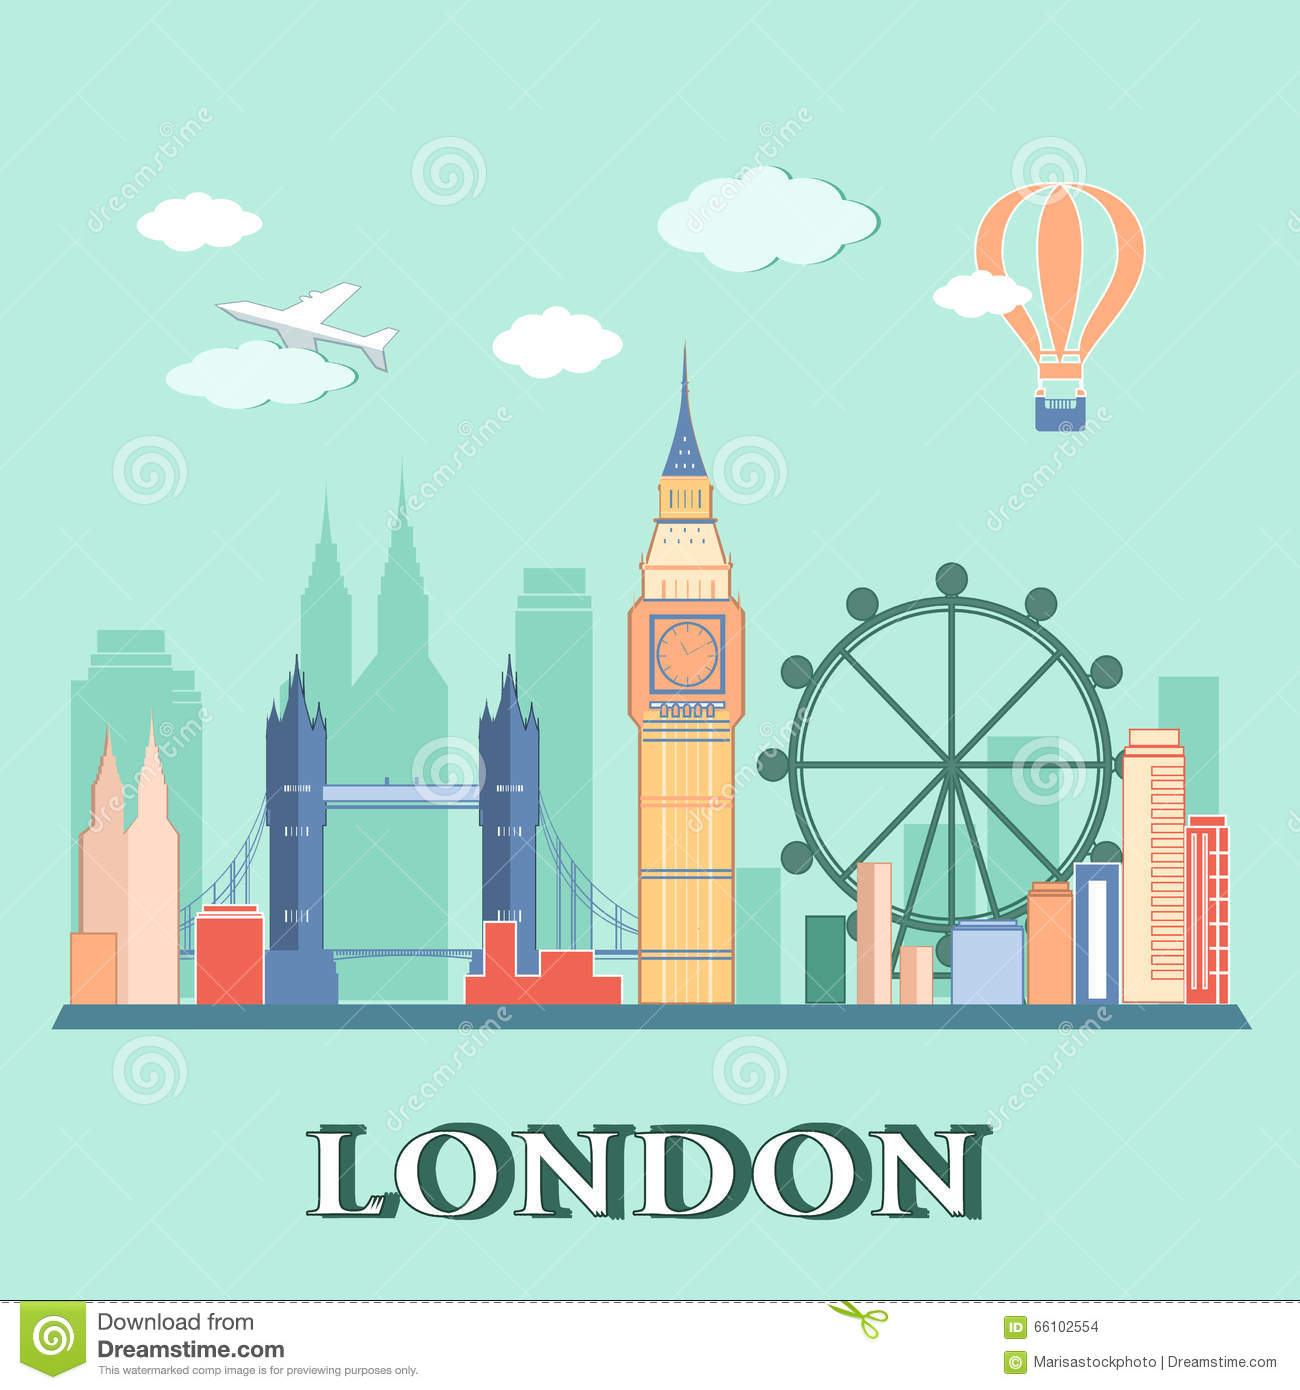 Flat Design London City Landscape. Vector Illustration